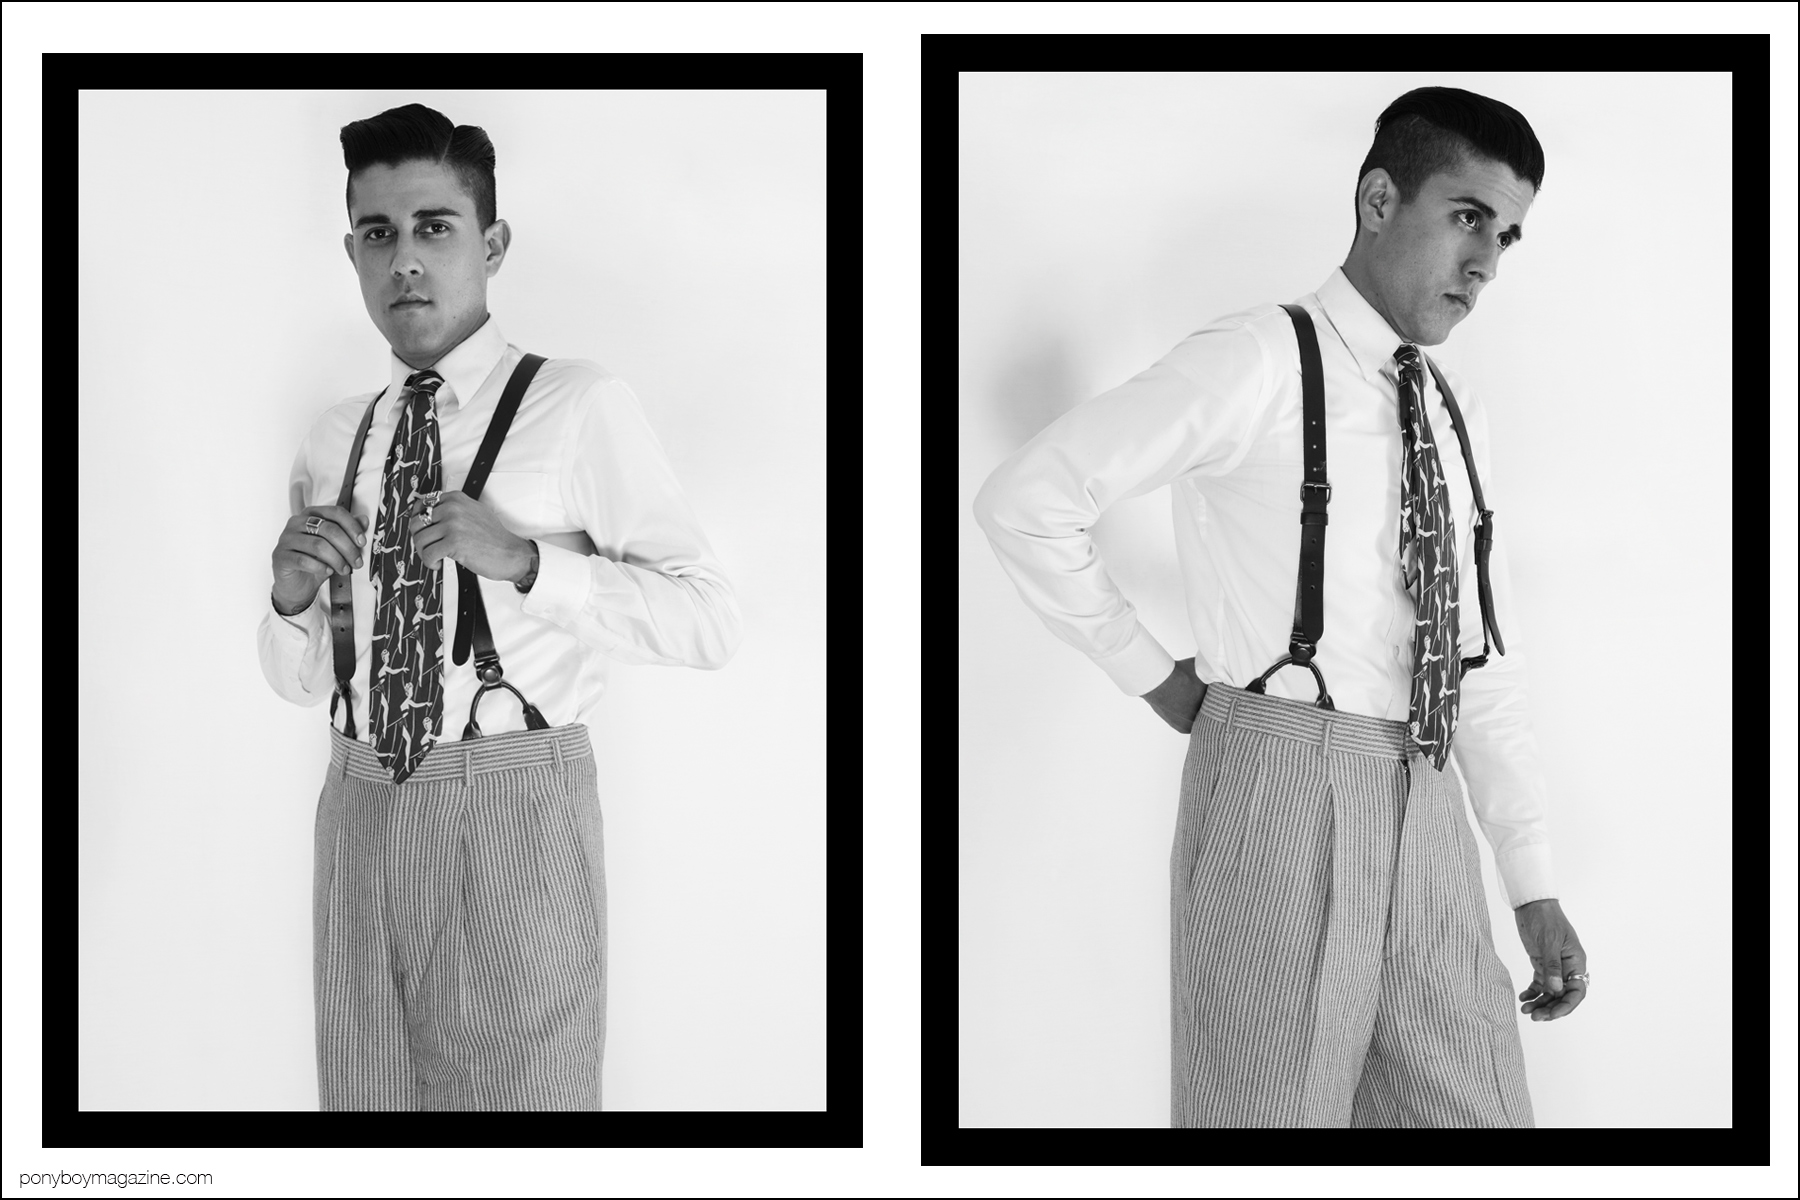 West Coast based production designer Daniel Luna, photographed in his best 30's-40's vintage menswear by Alexander Thompson for Ponyboy magazine.